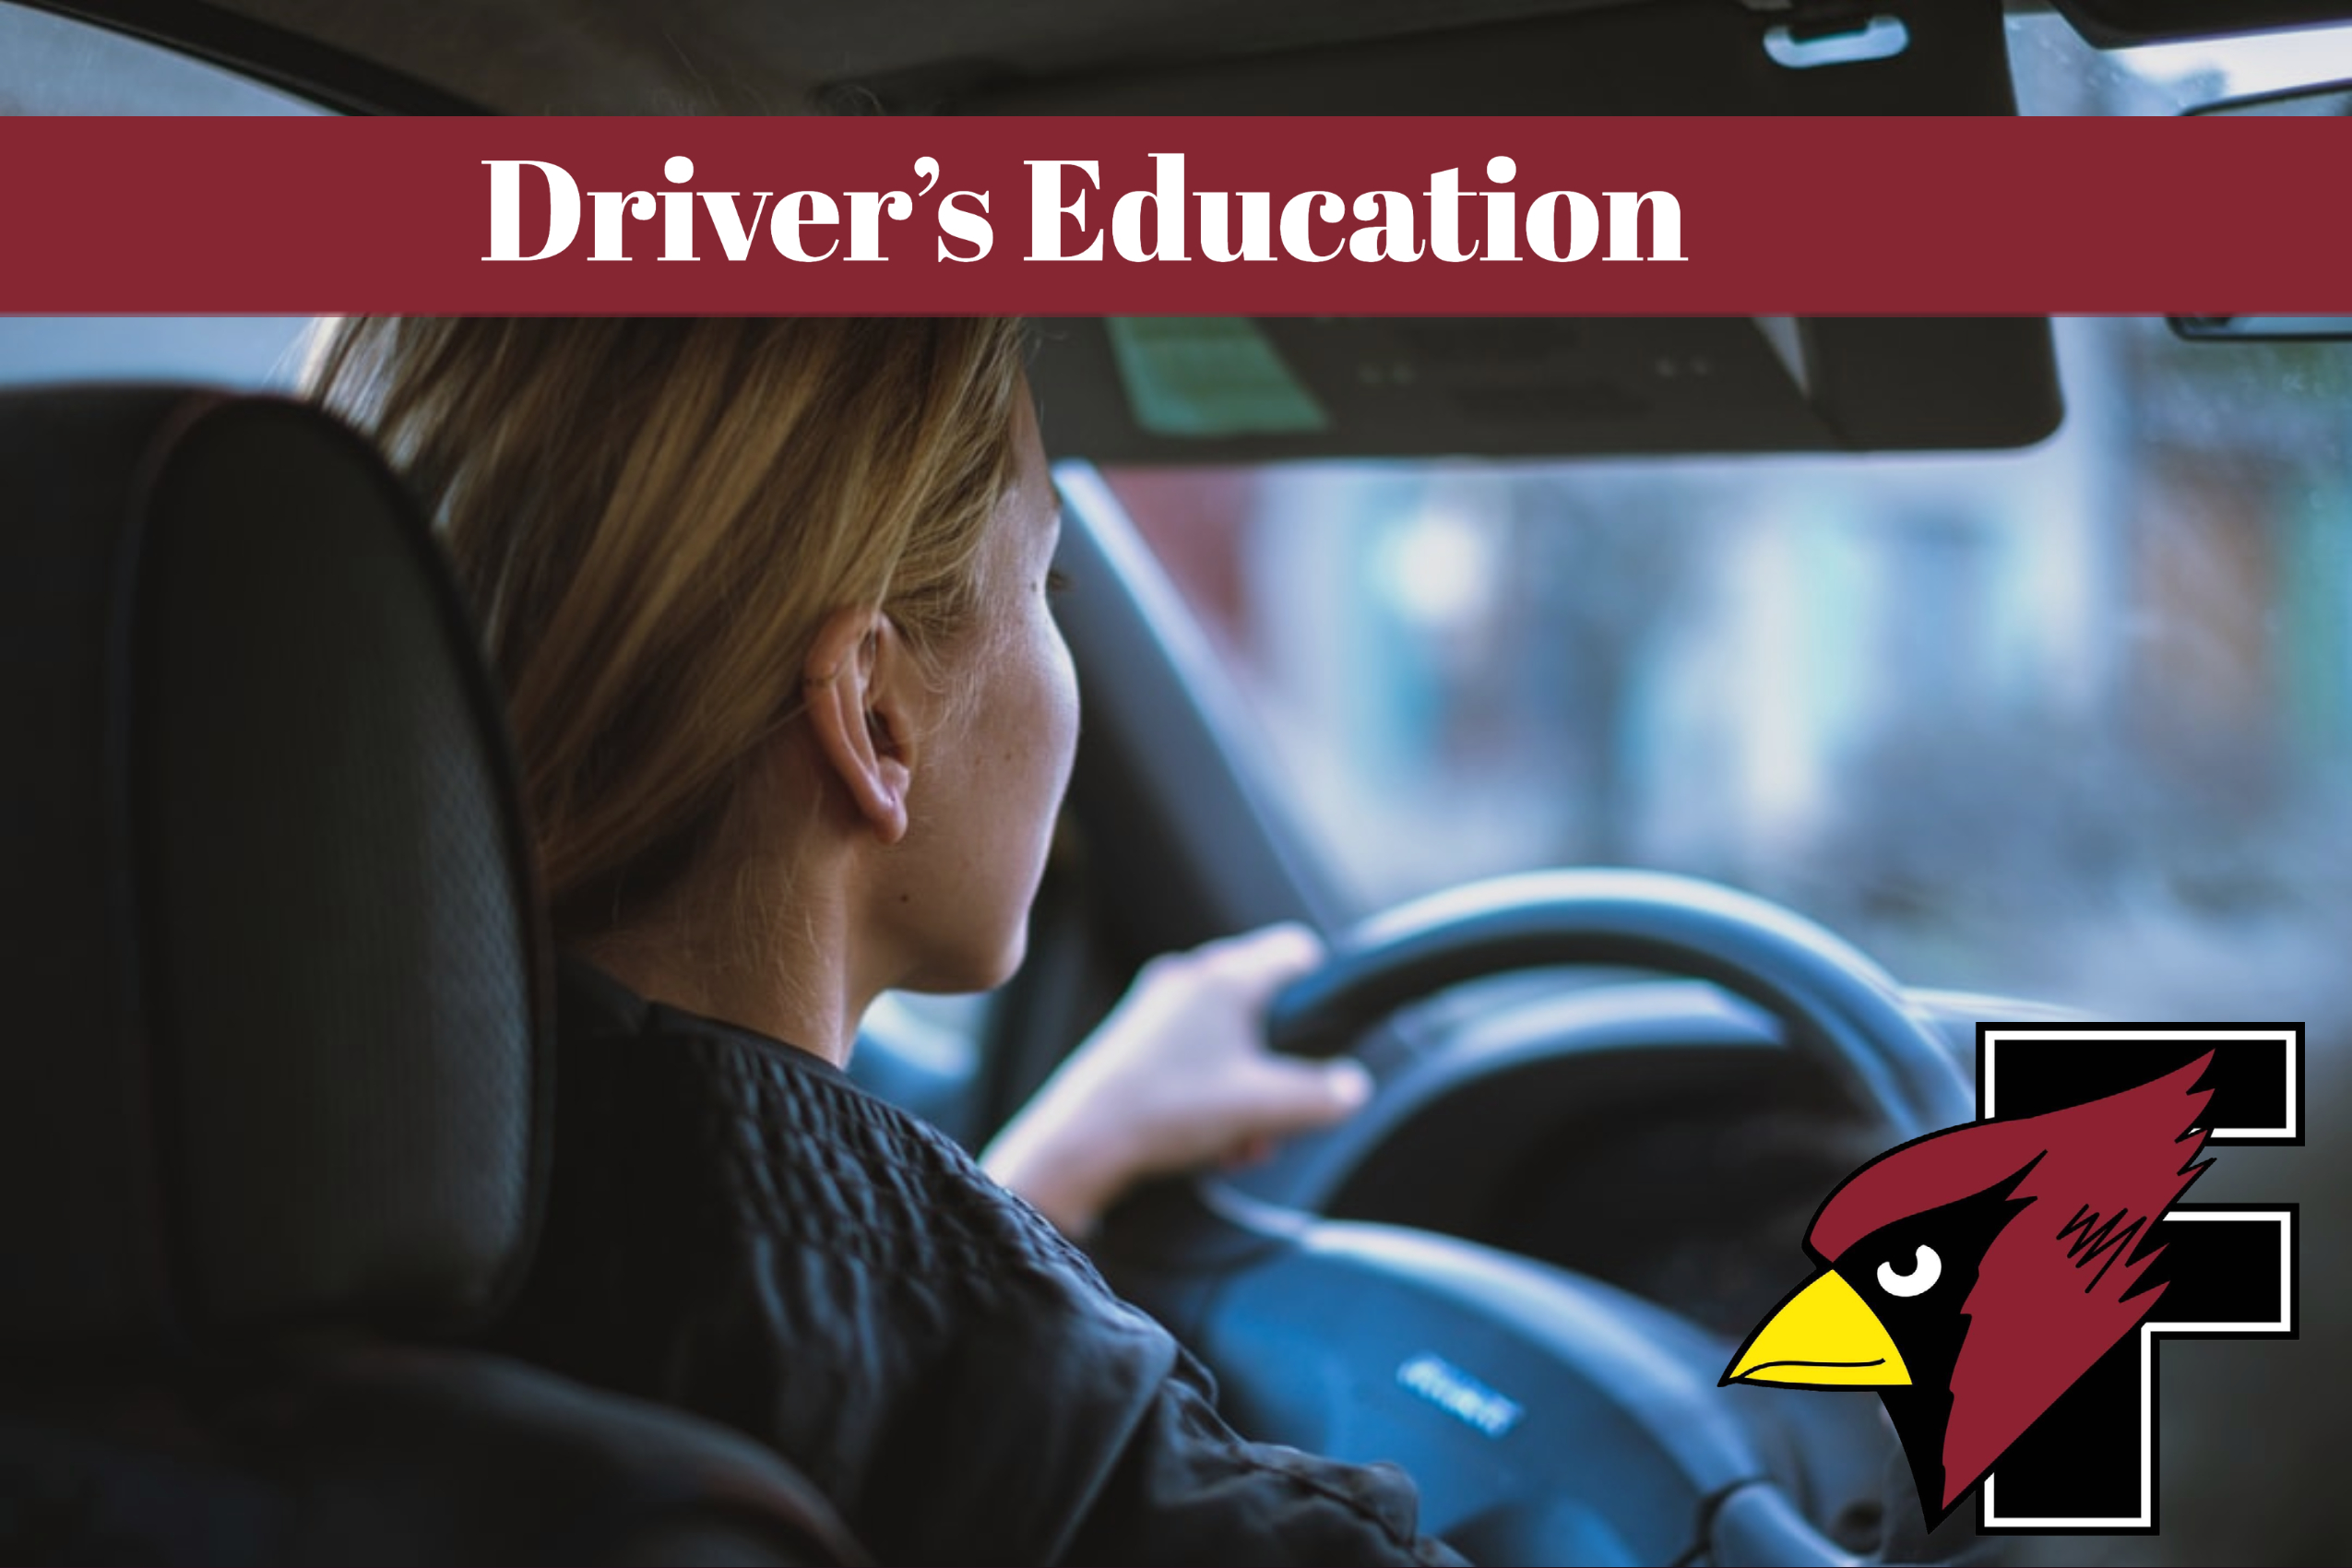 Driver's Education photo with FHS logo